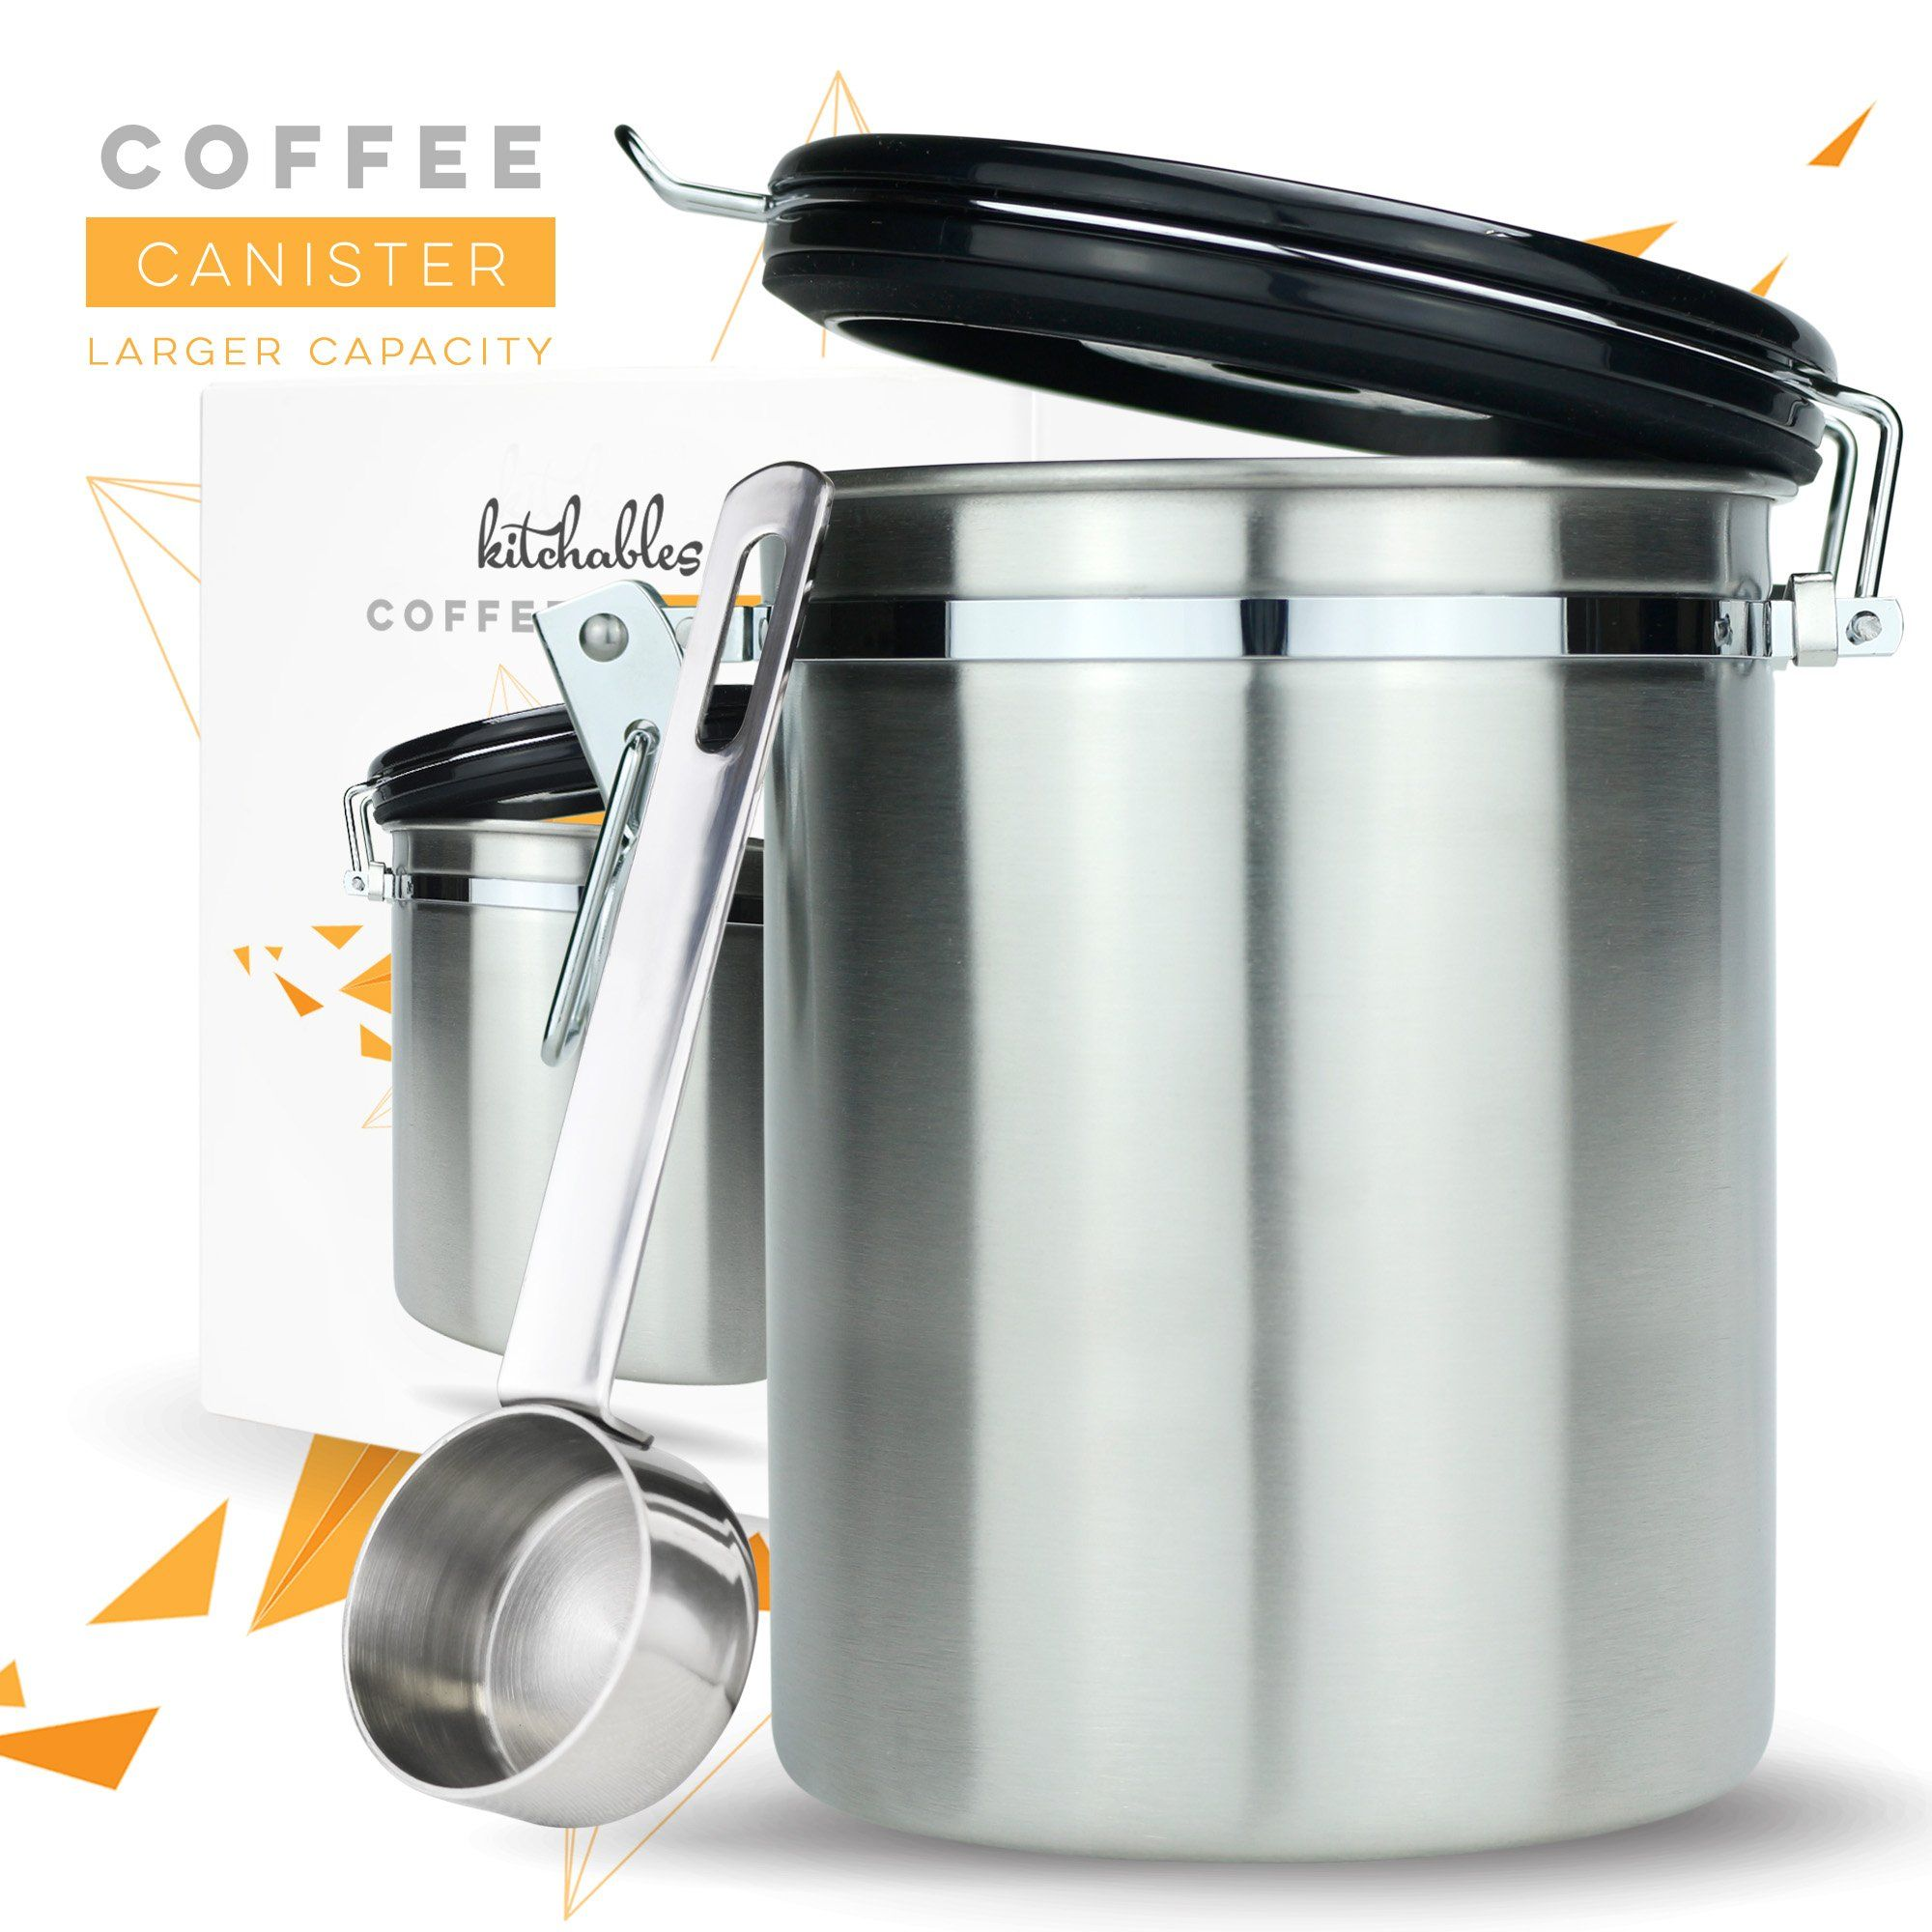 Coffee Canister Large Airtight Seal Set with Scoop Stainless